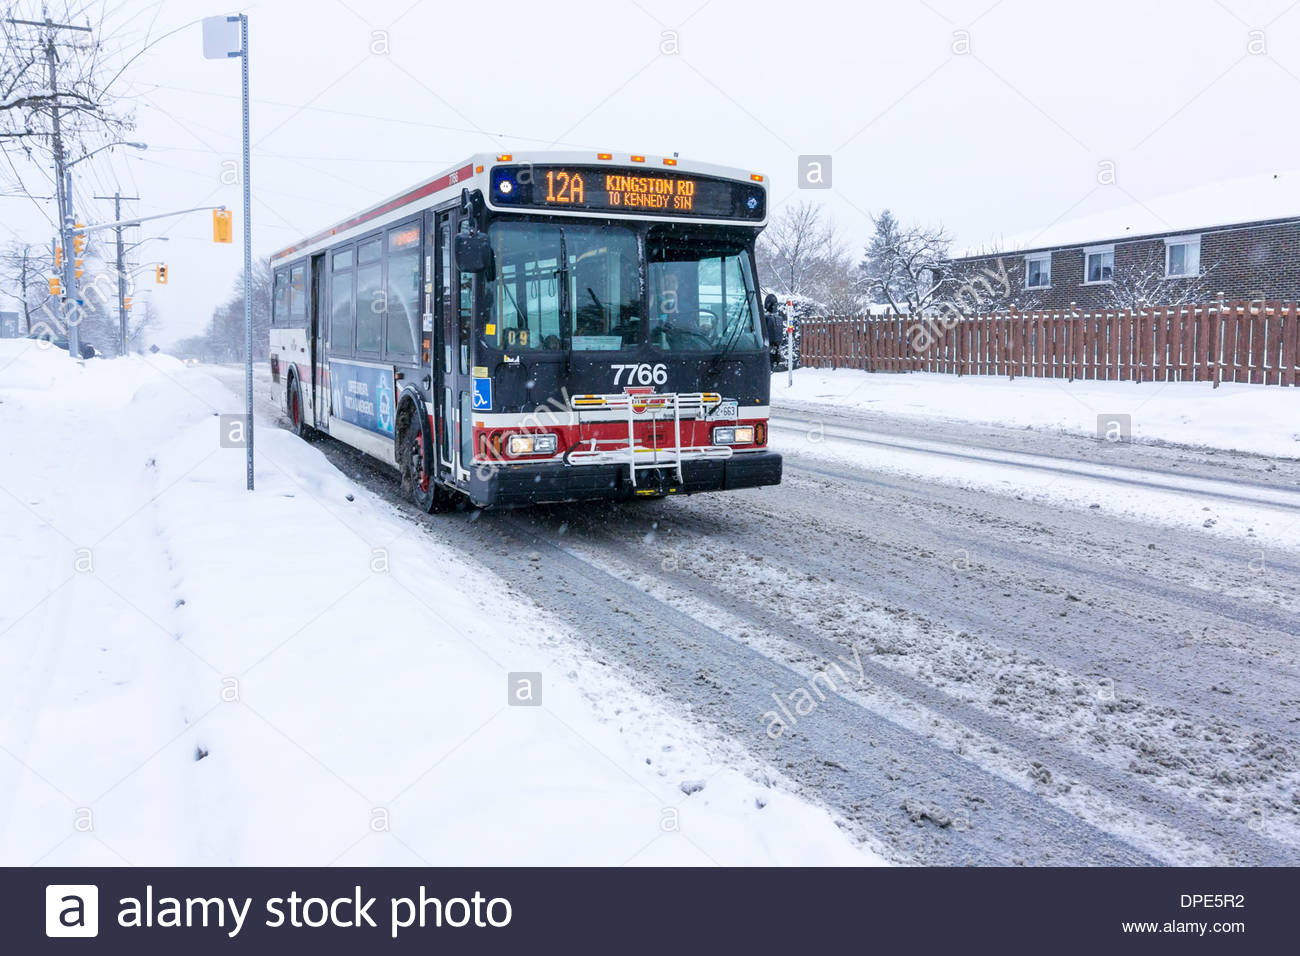 City bus on day so cold that salt ineffective in melting snow creating a slippery slush on road in Toronto Ontario Canada - Stock Image